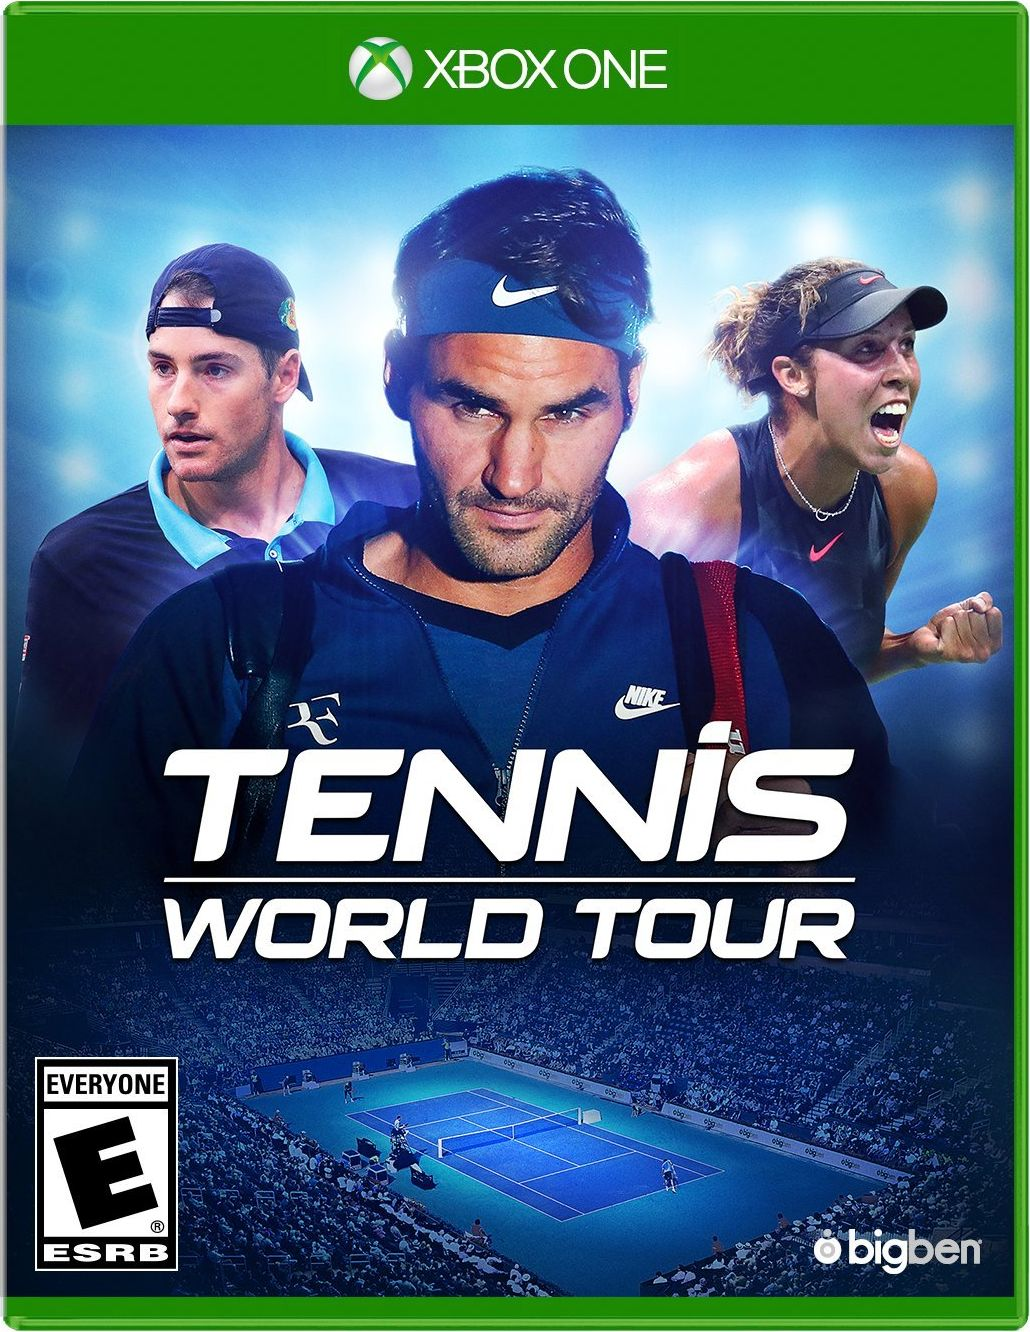 tennis world tour release date  switch  pc  xbox one  ps4